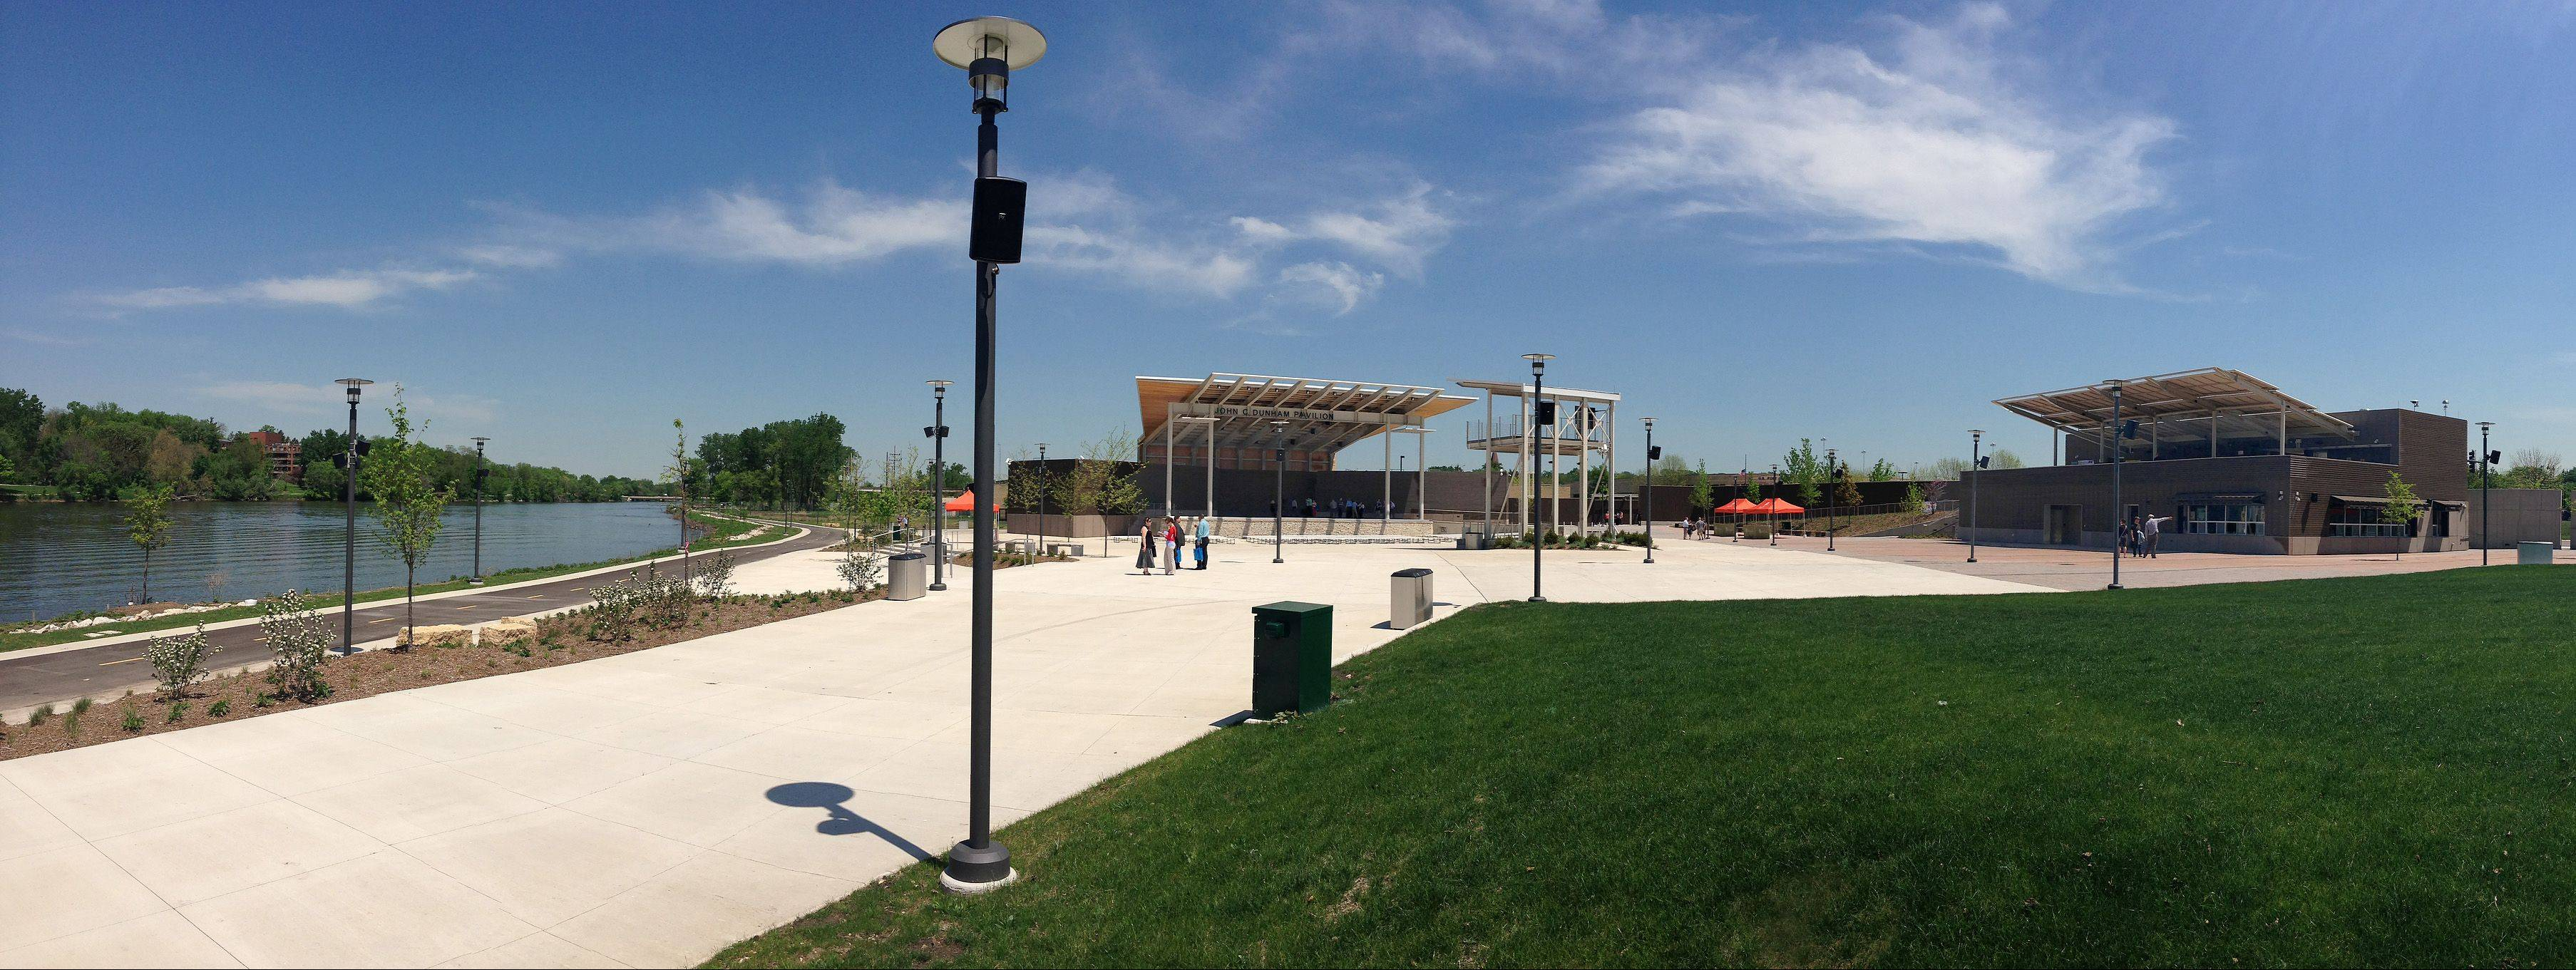 RiverEdge Park, which opened in June to host the annual Blues on the Fox Festival, is the highlight of Aurora's recent redevelopment efforts along the Fox River through its downtown.